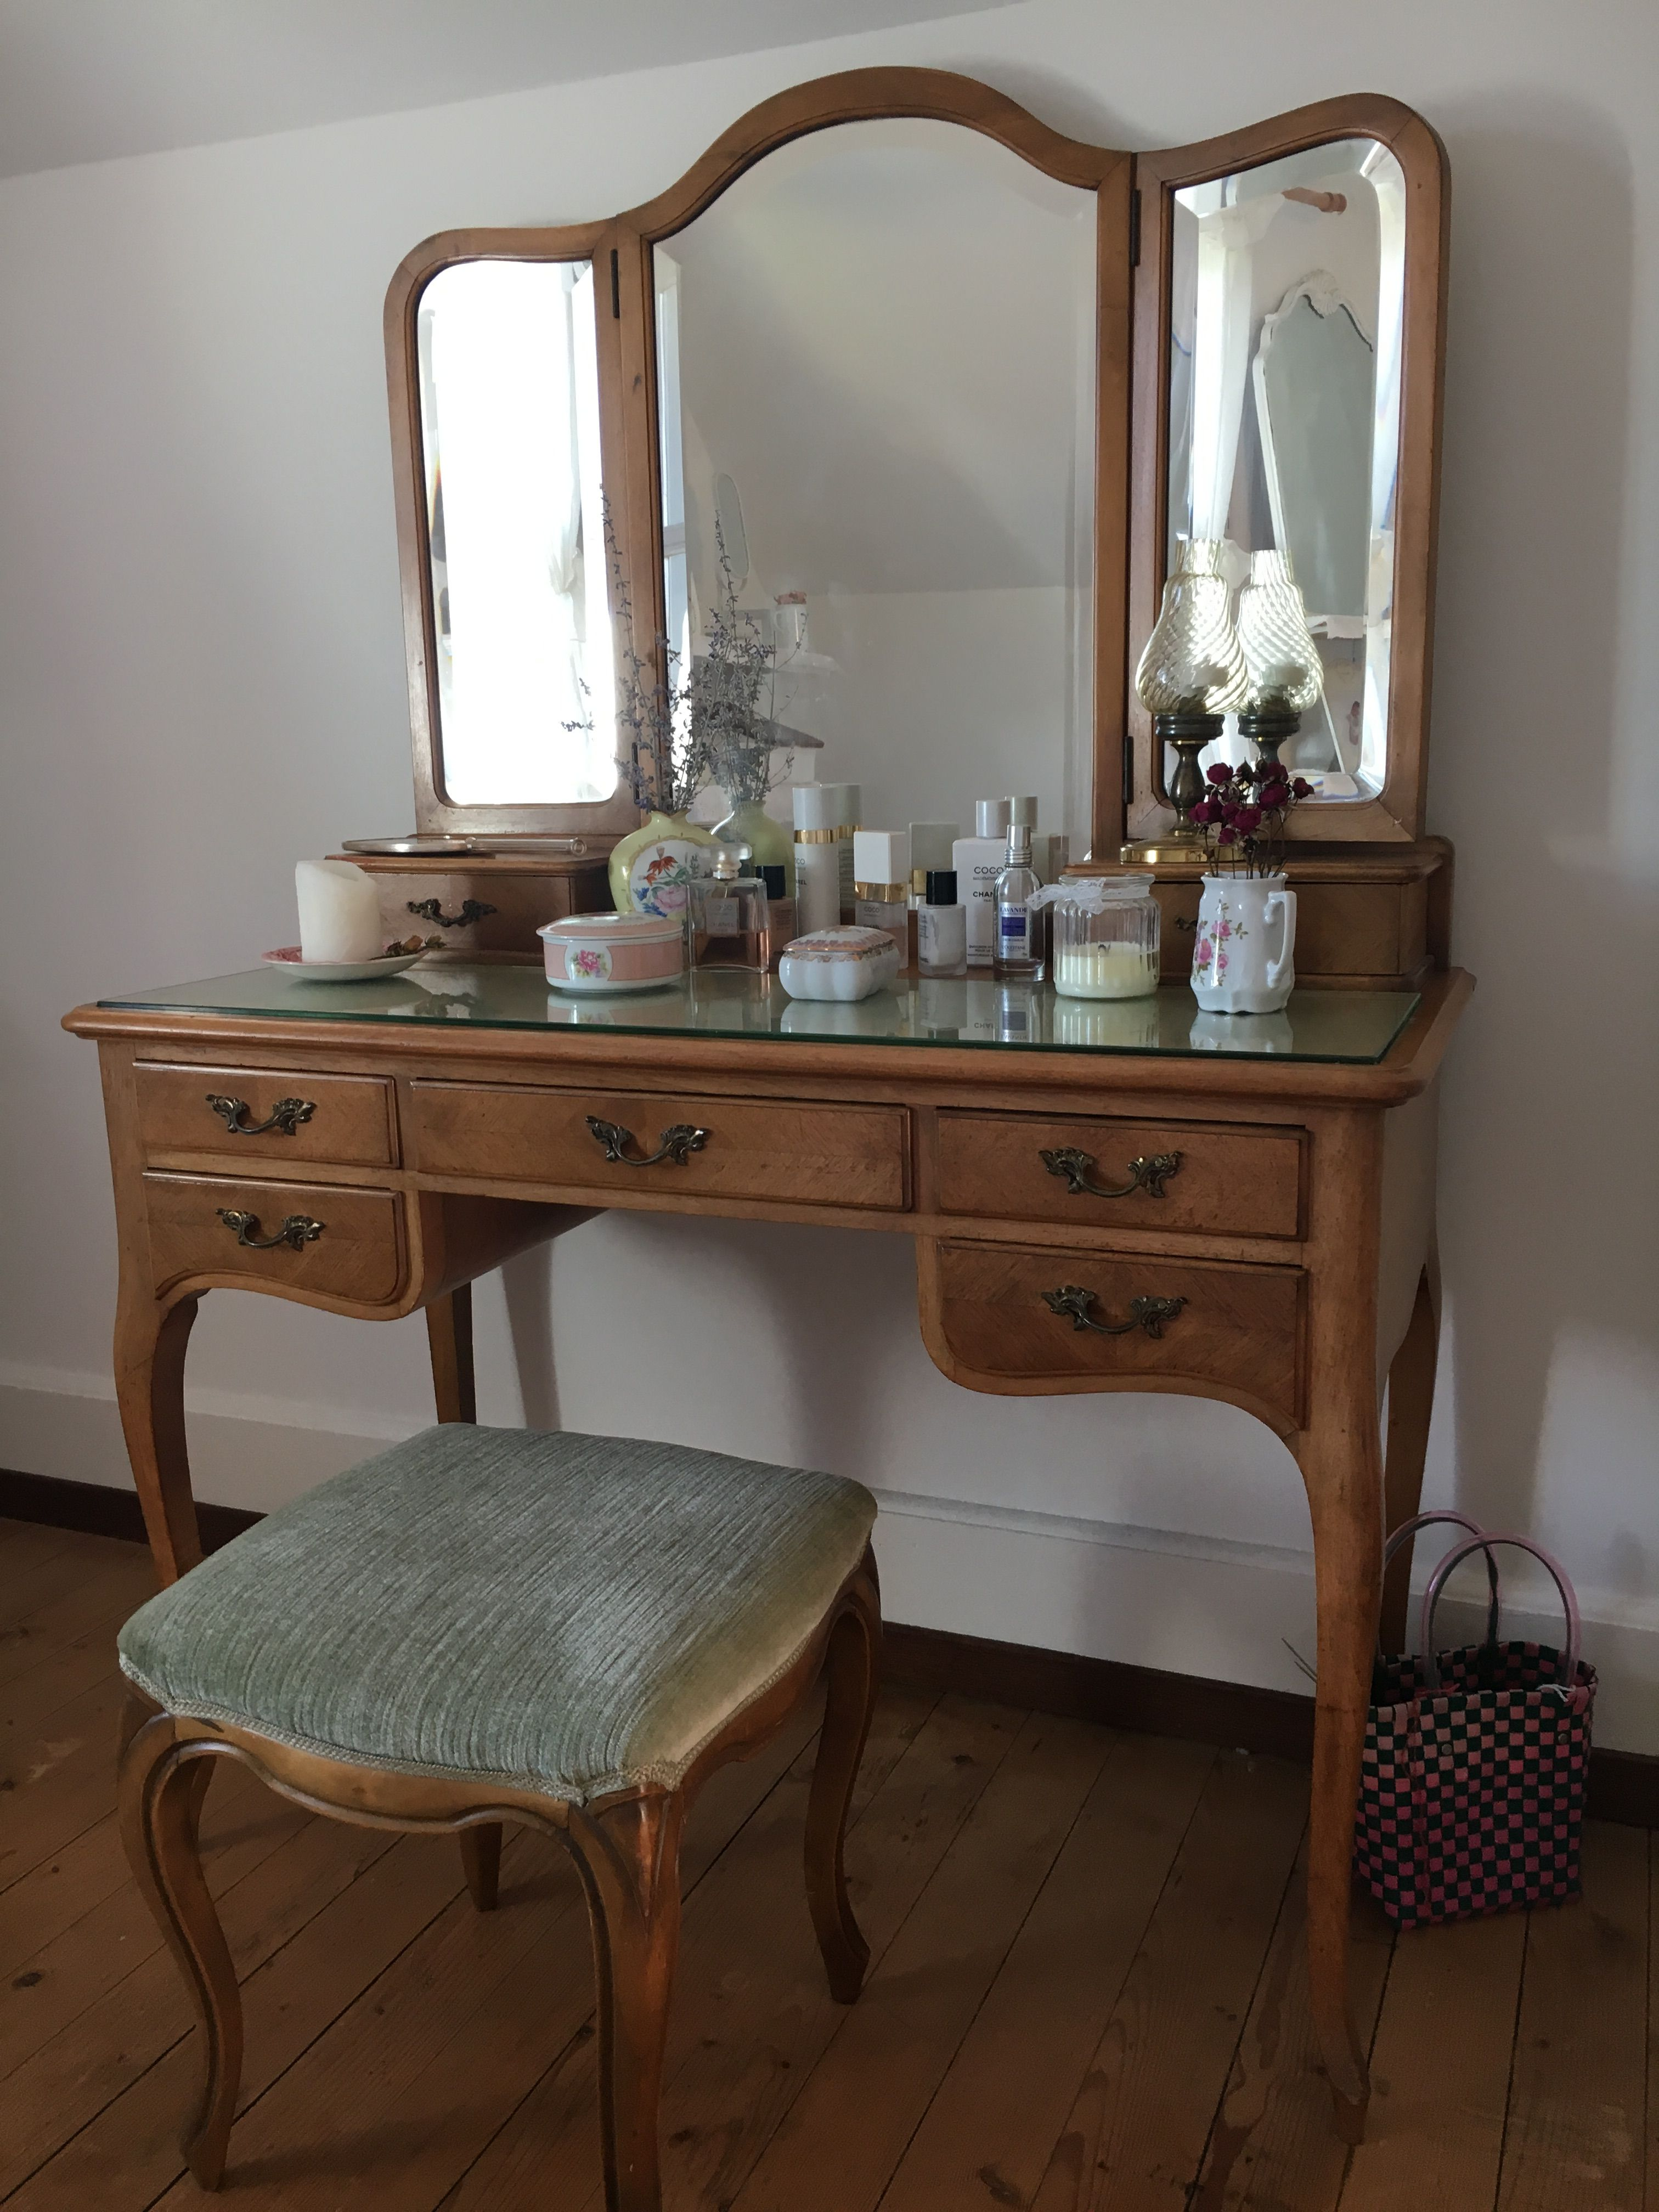 Schlafzimmer Kommode Mit Spiegel Dressing Table Design Home Decor Furniture